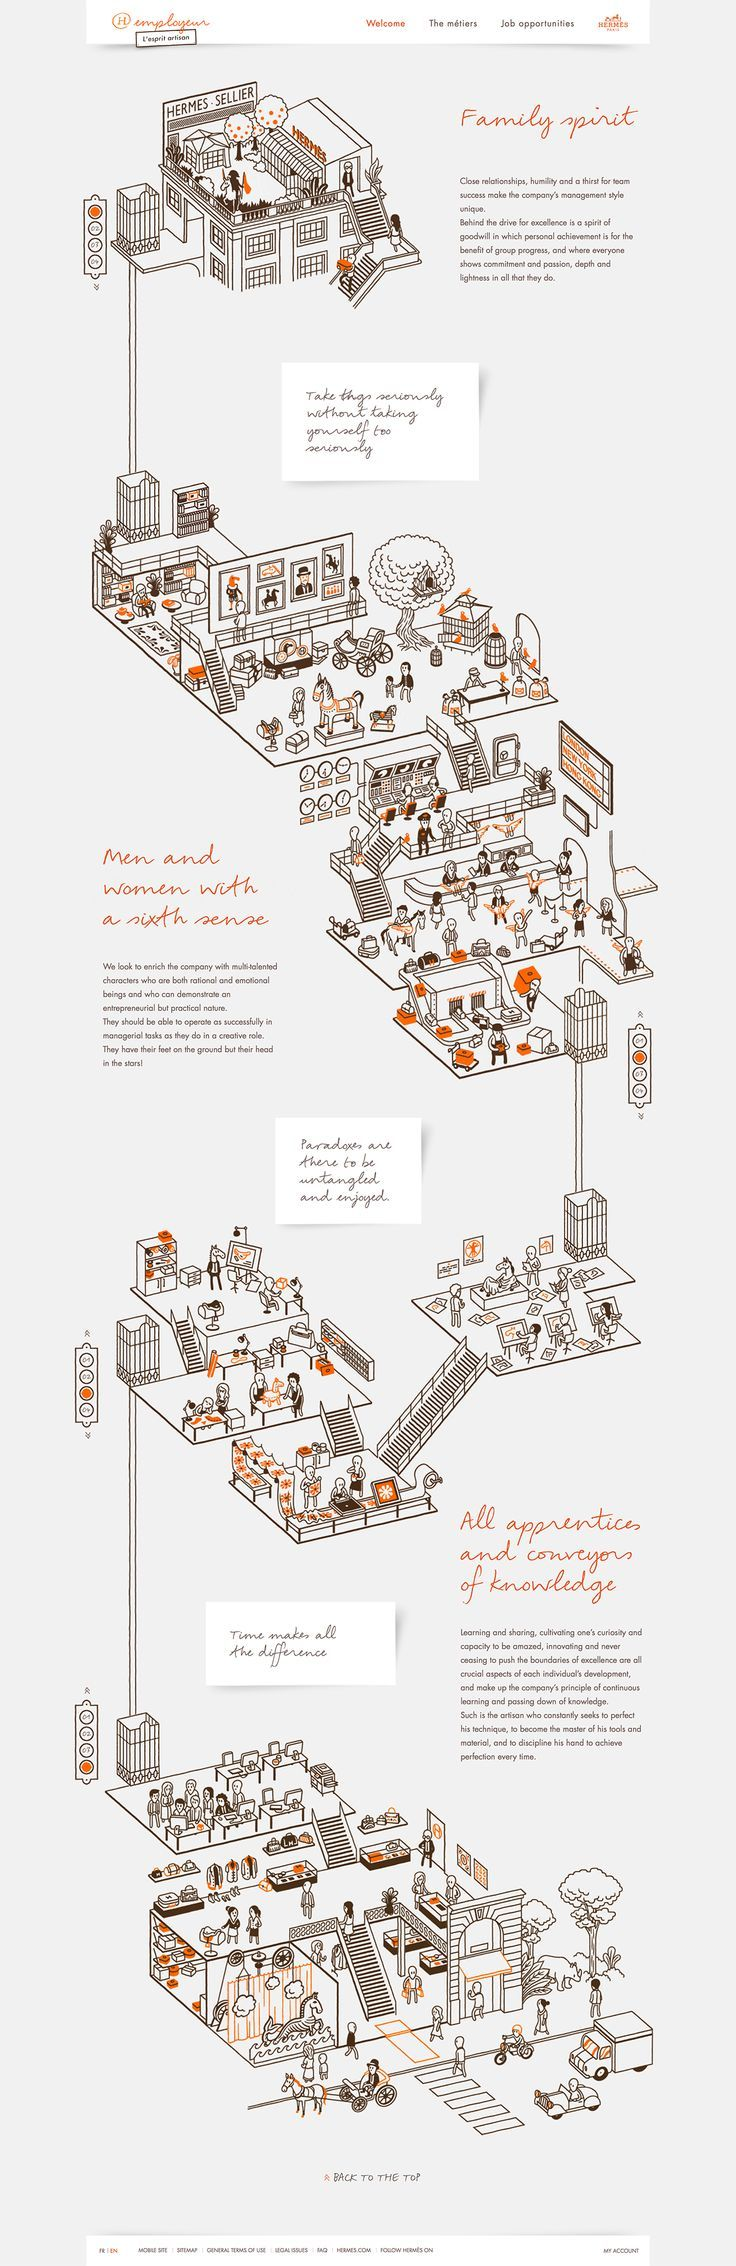 Hermes employeur website - Nice interaction & scroll effect combined with pretty neat illustrations!